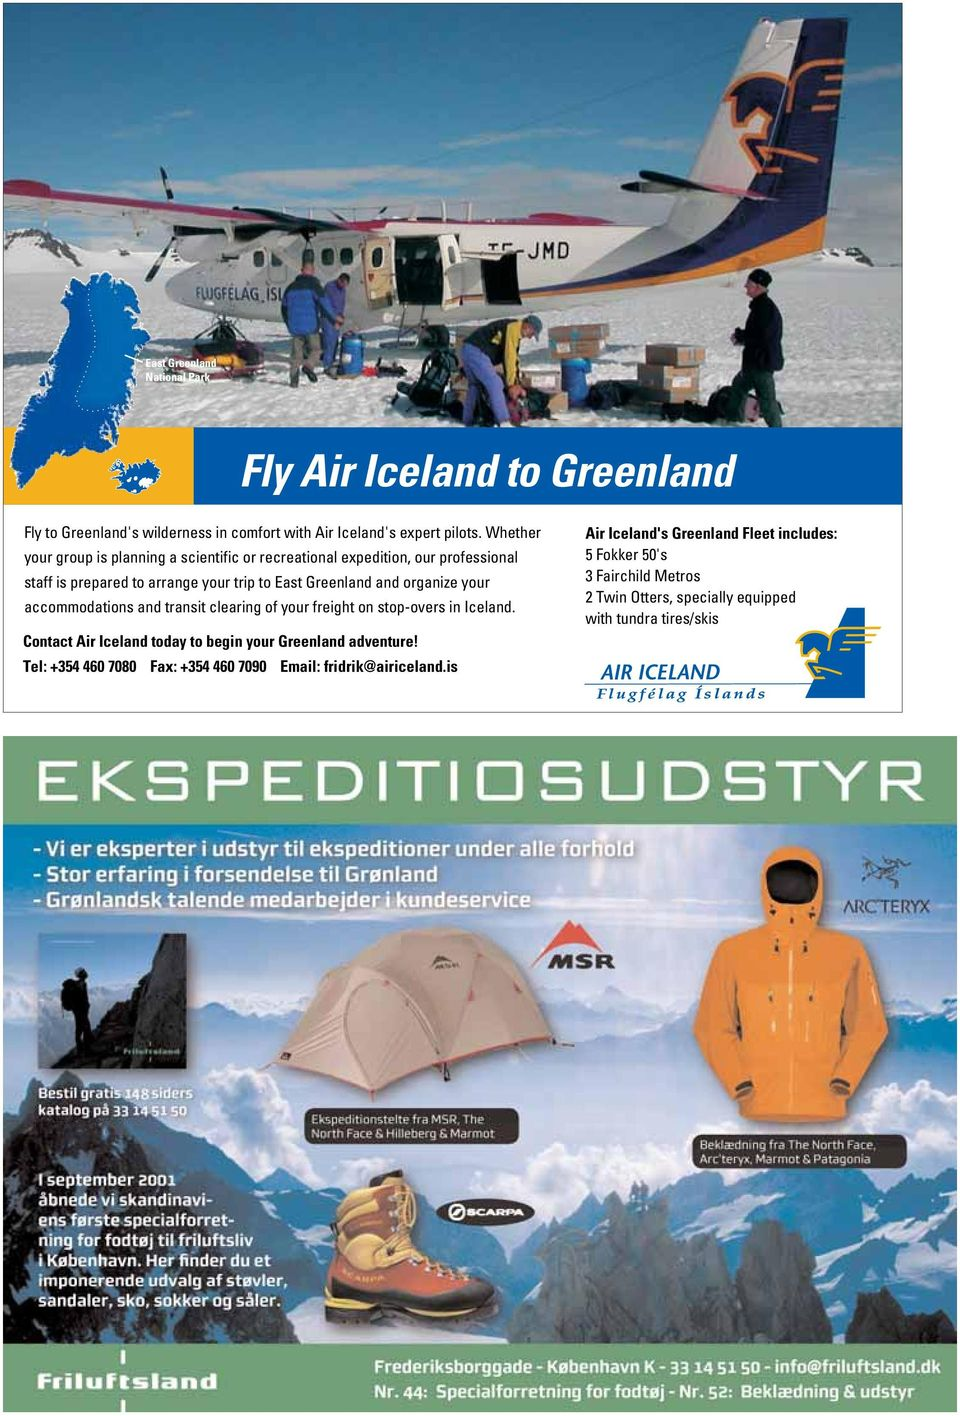 organize your accommodations and transit clearing of your freight on stop-overs in Iceland. Contact Air Iceland today to begin your Greenland adventure!